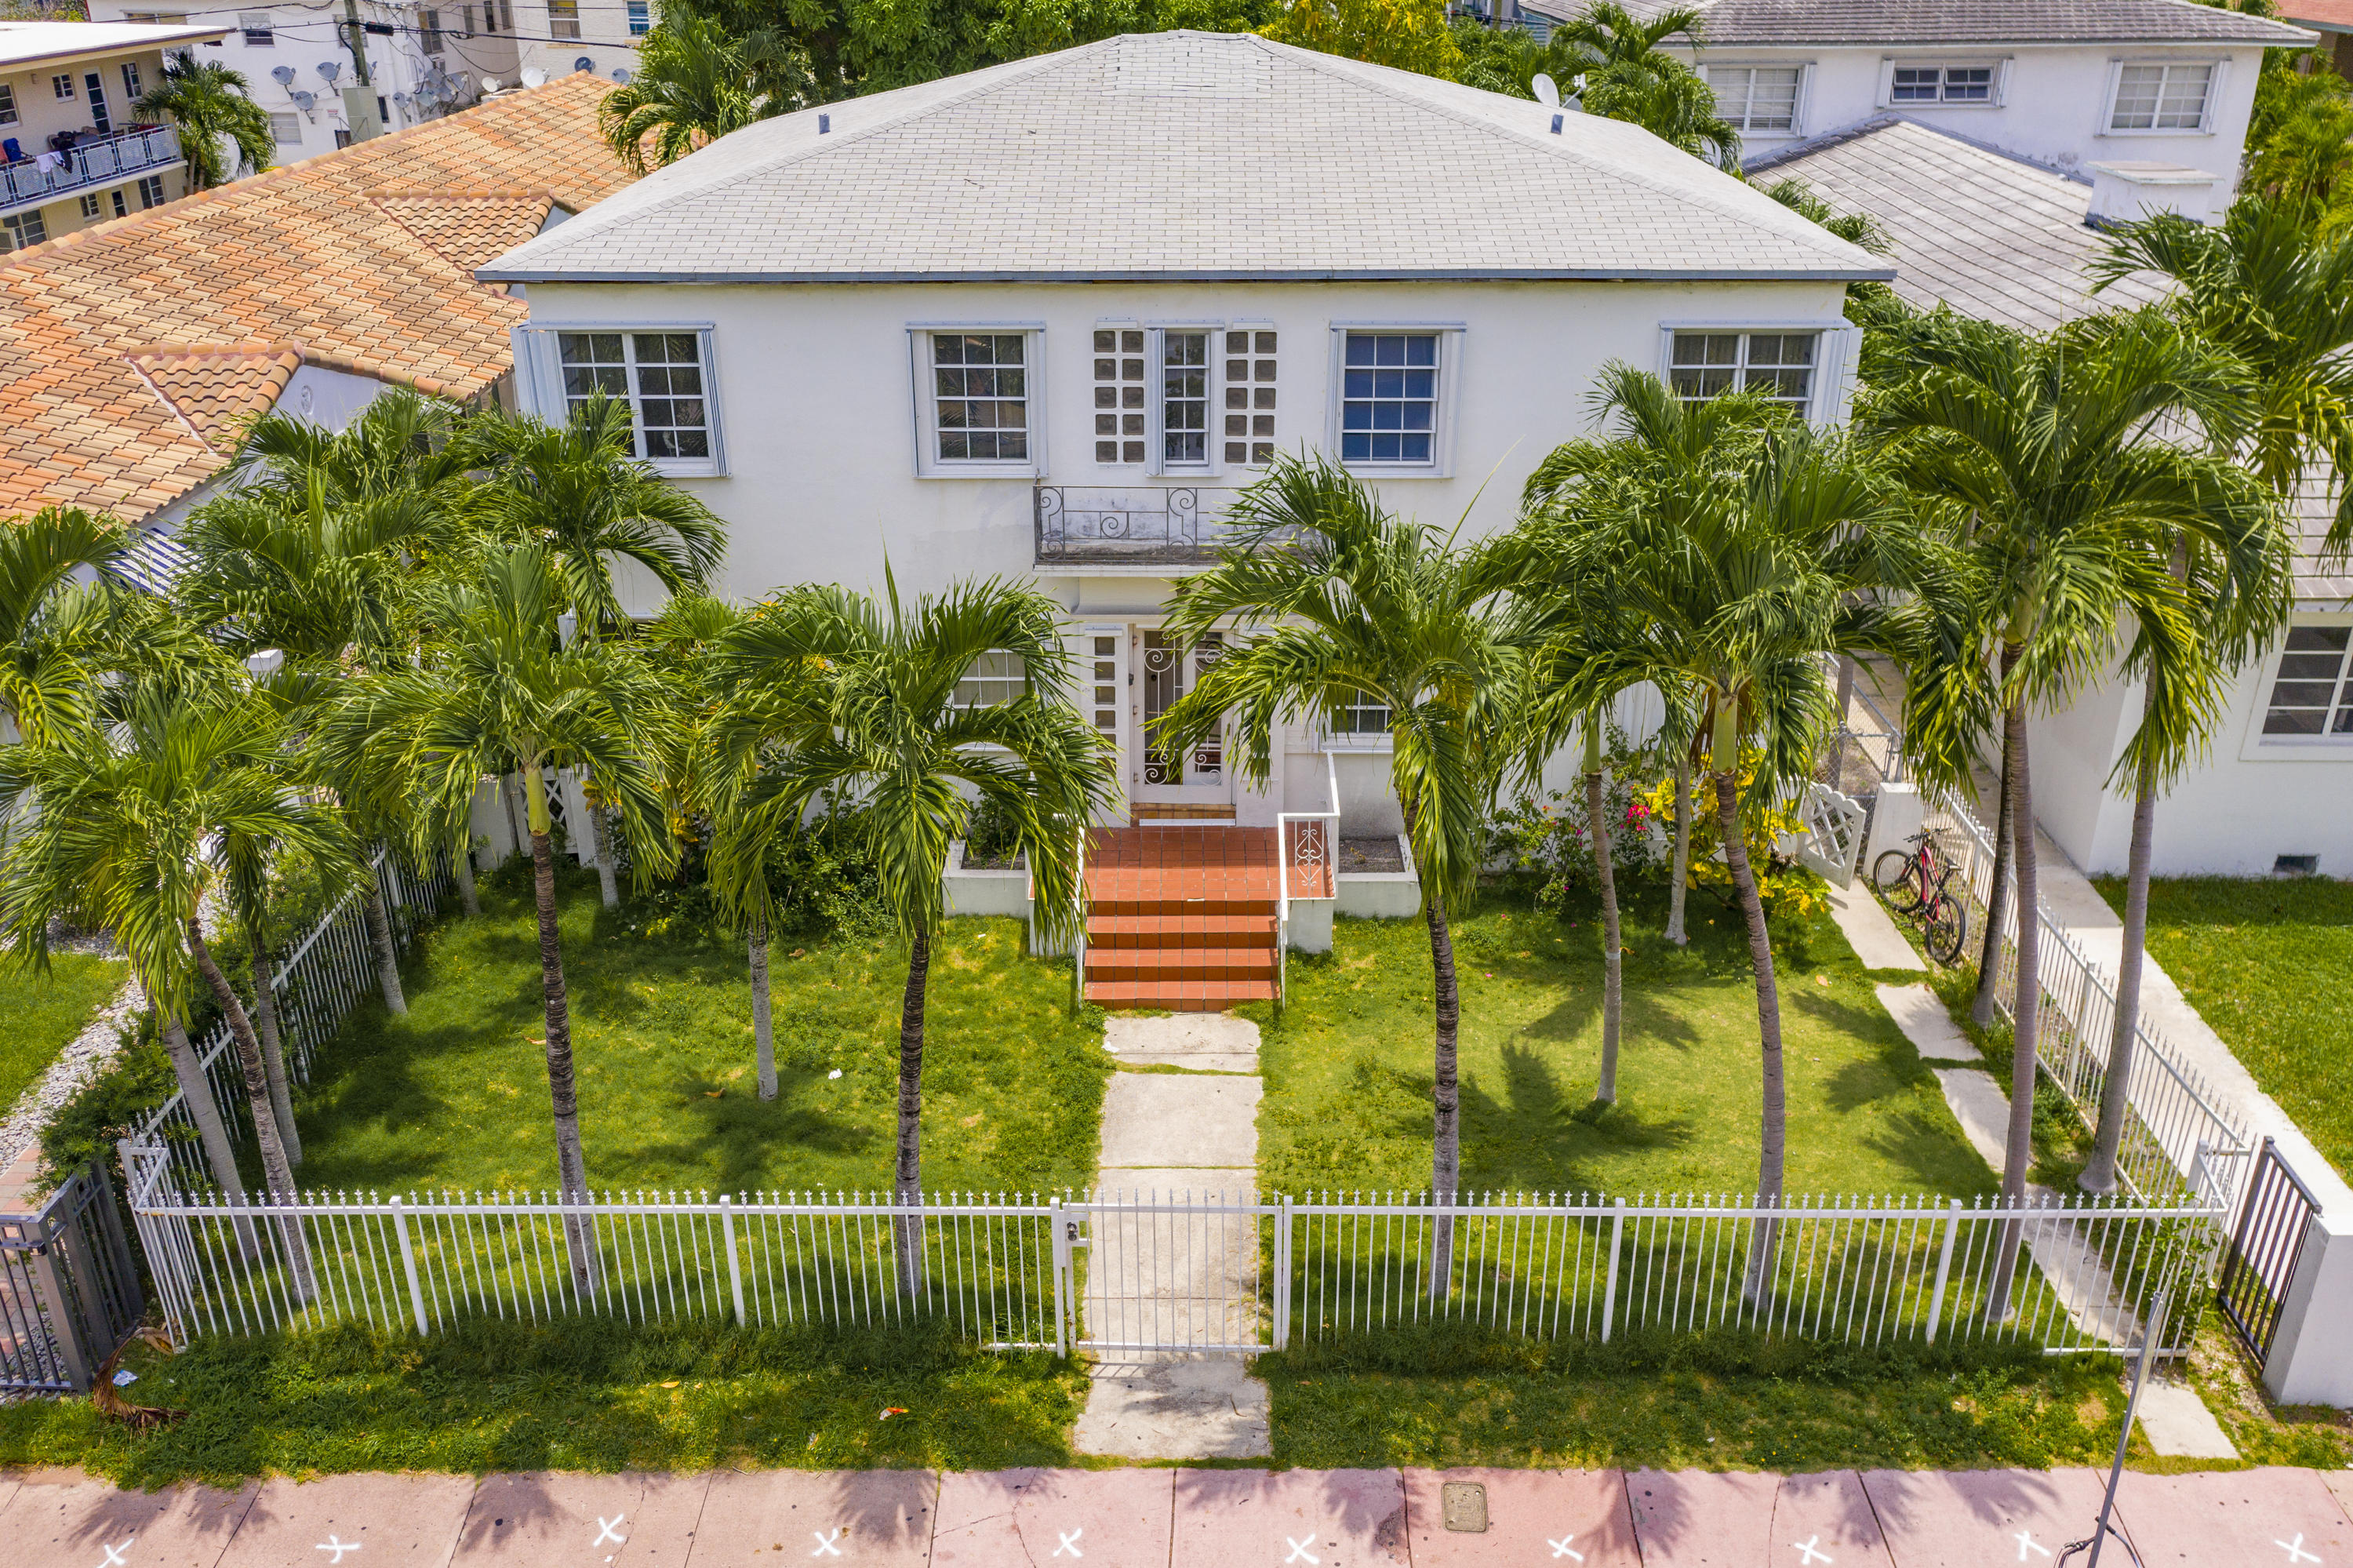 635 Lenox Avenue - Miami Beach, Florida